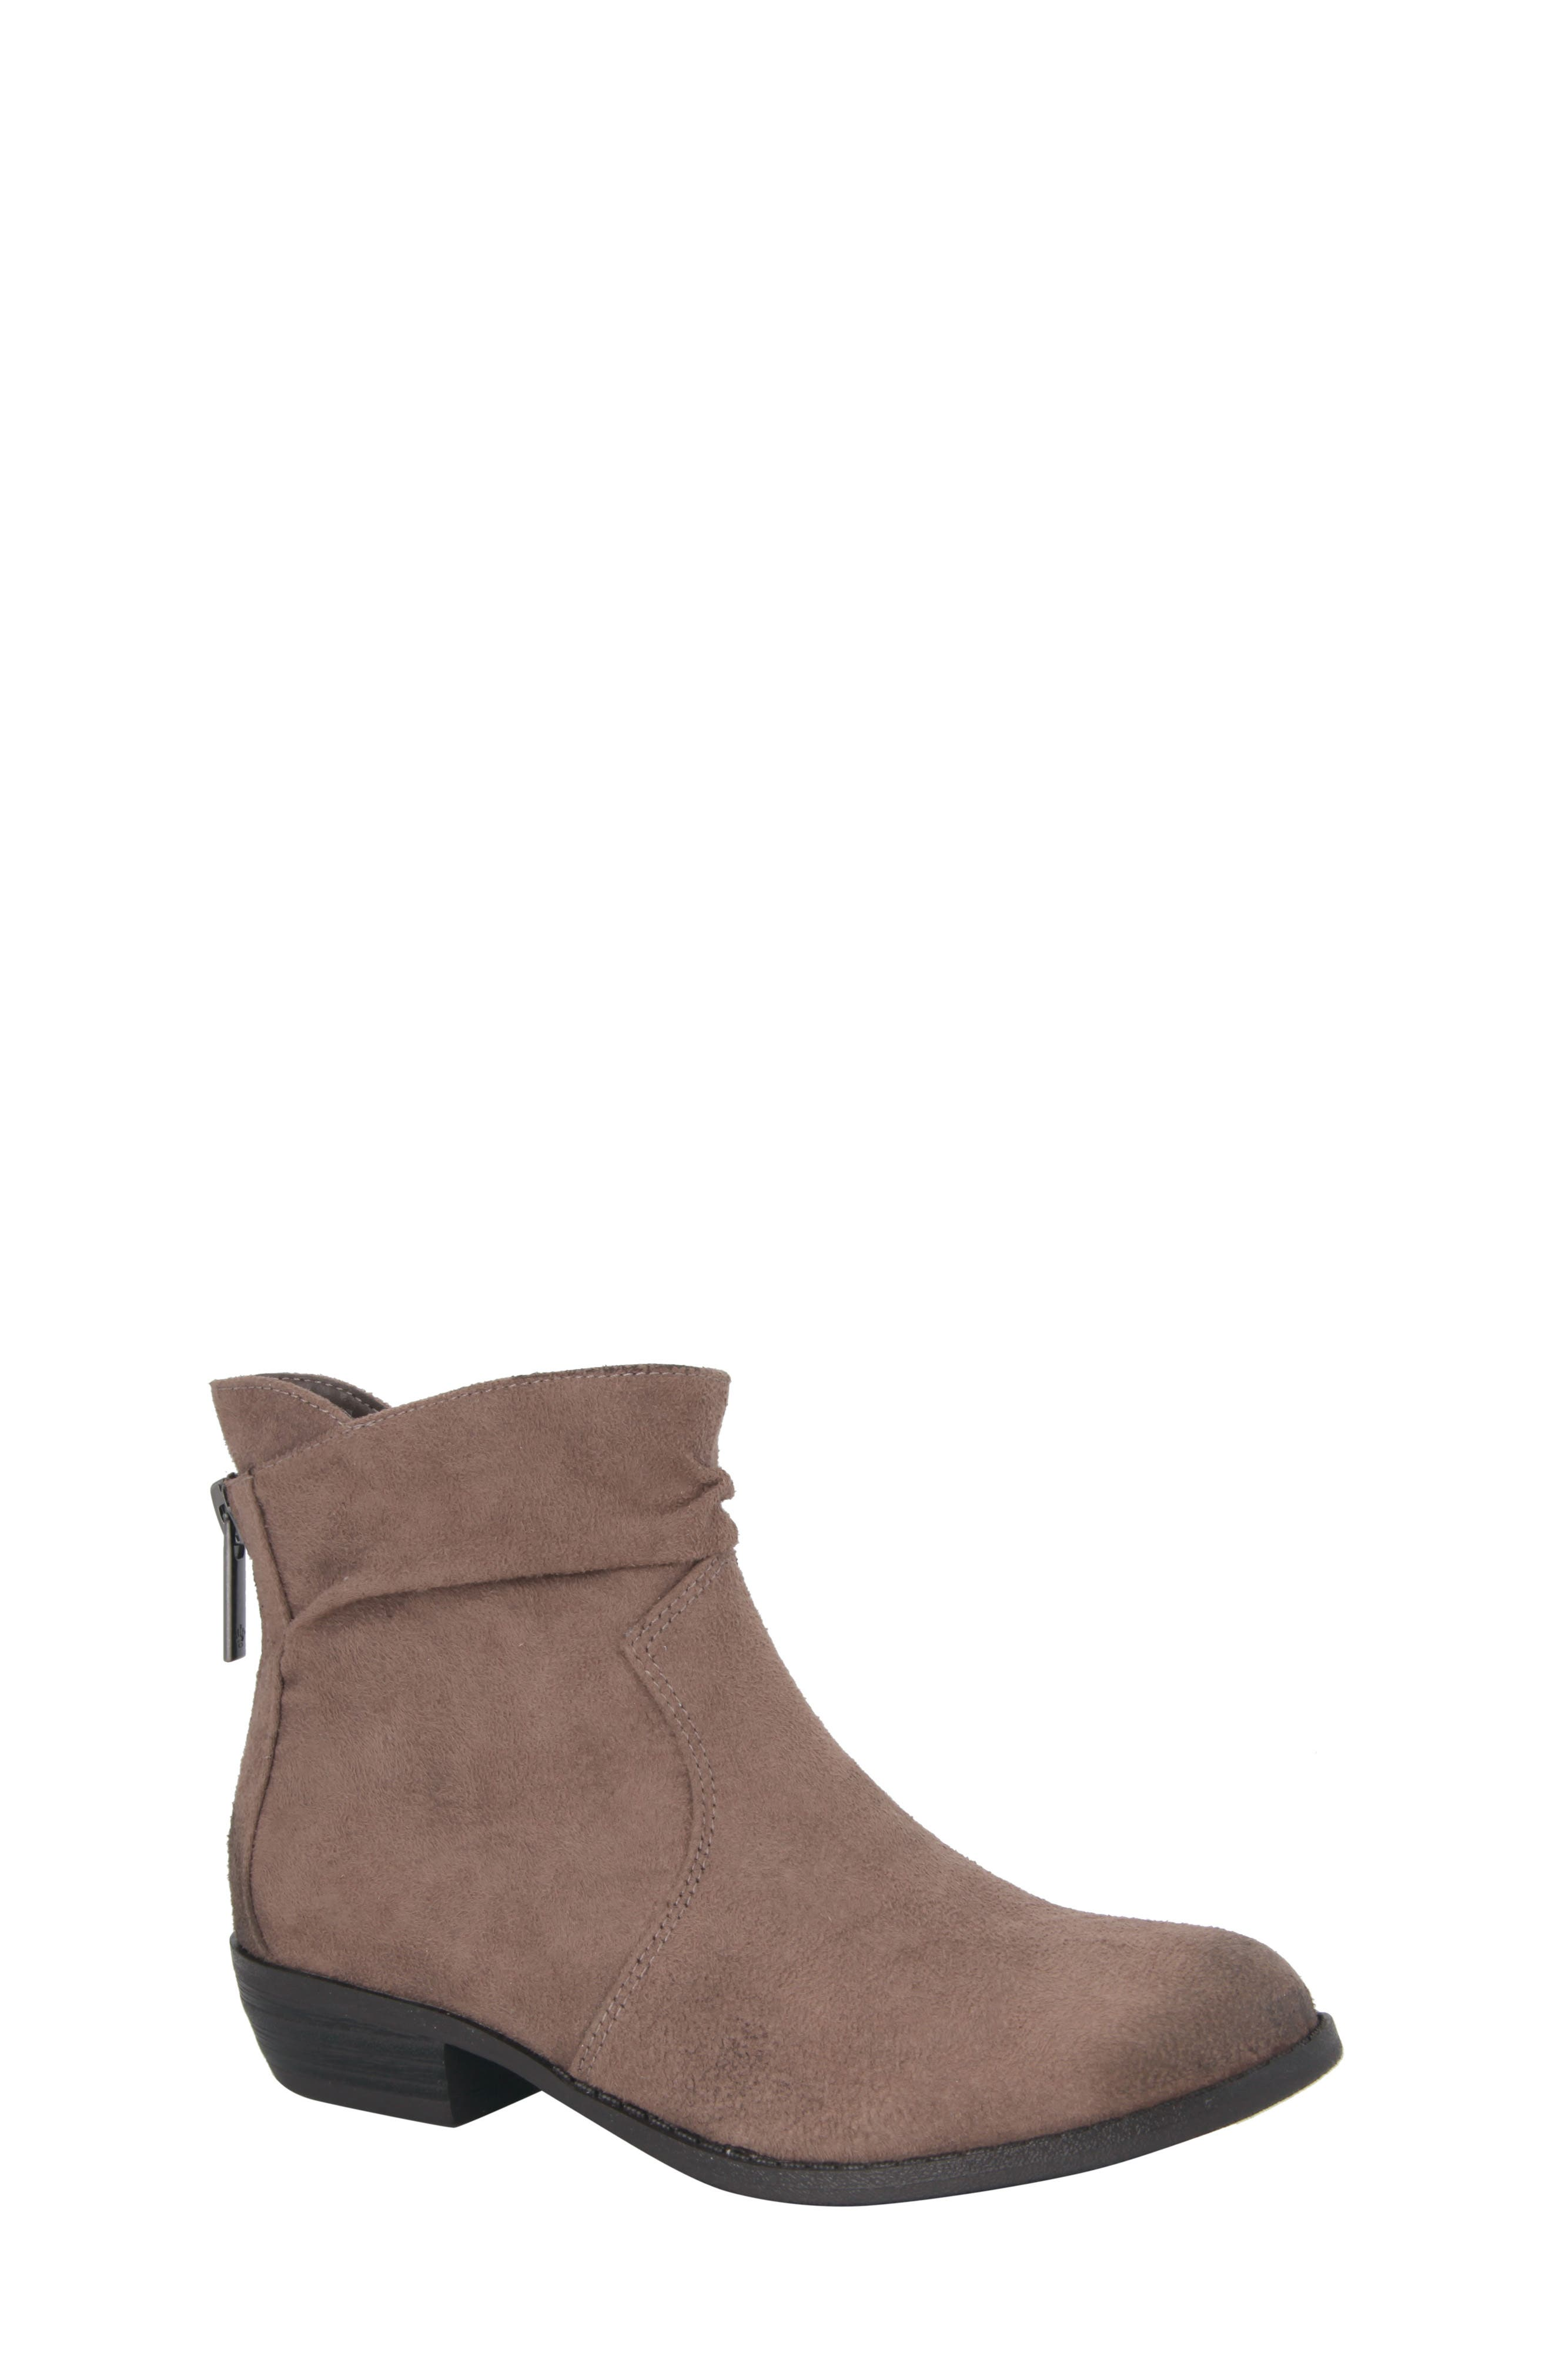 Delia Slightly Slouchy Bootie,                         Main,                         color, Taupe Microsuede